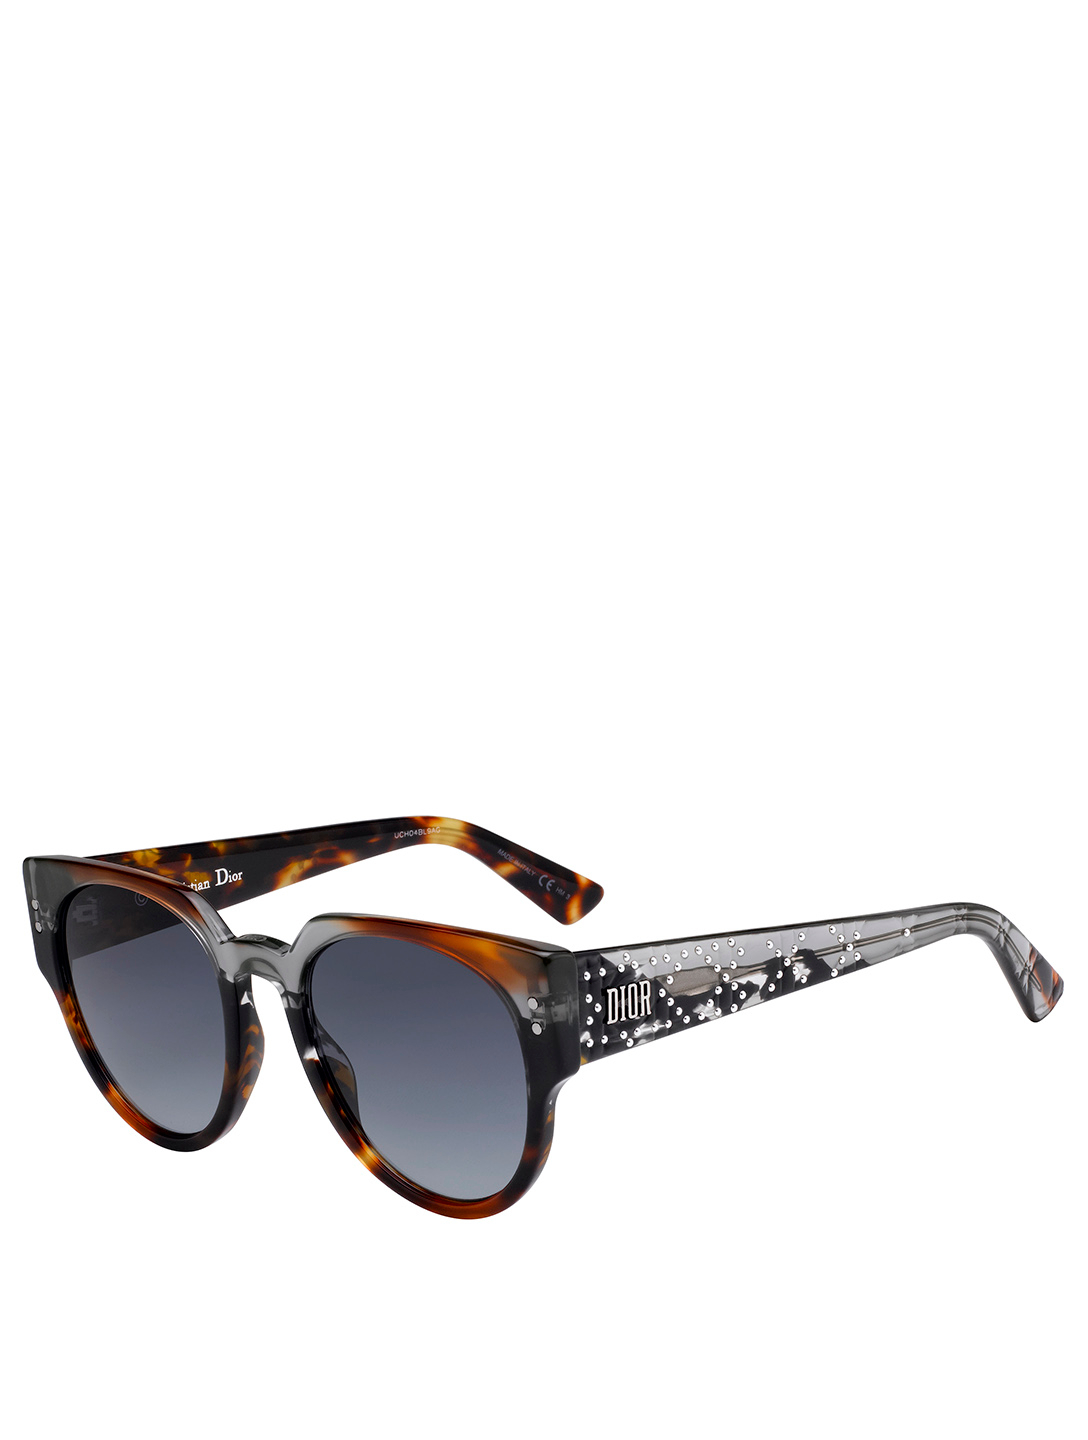 DIOR LadyDiorStuds3 Round Sunglasses Women's Brown